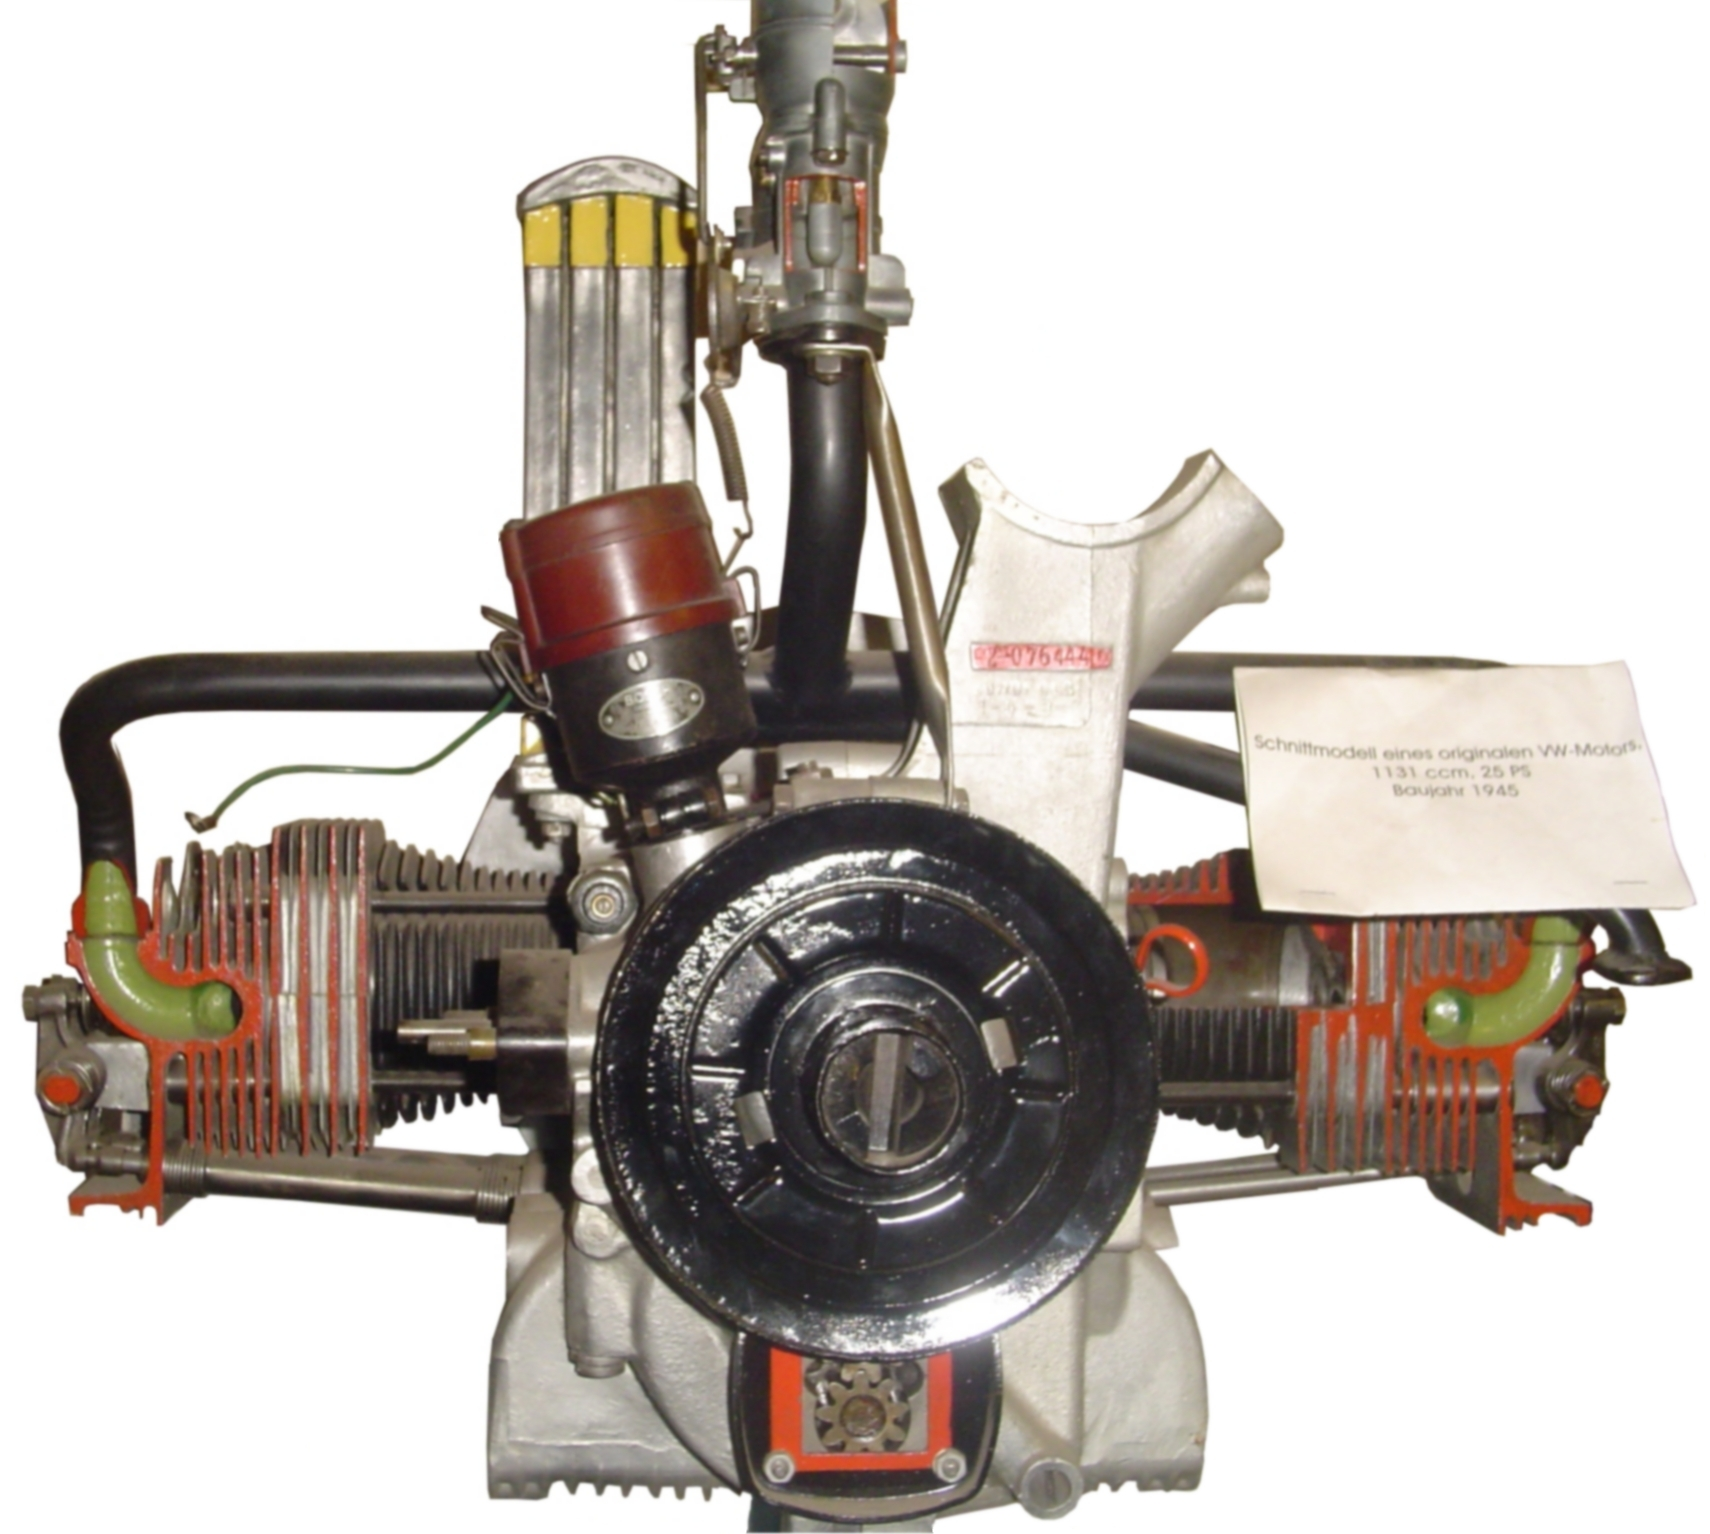 hight resolution of the flat 4 volkswagen air cooled engine